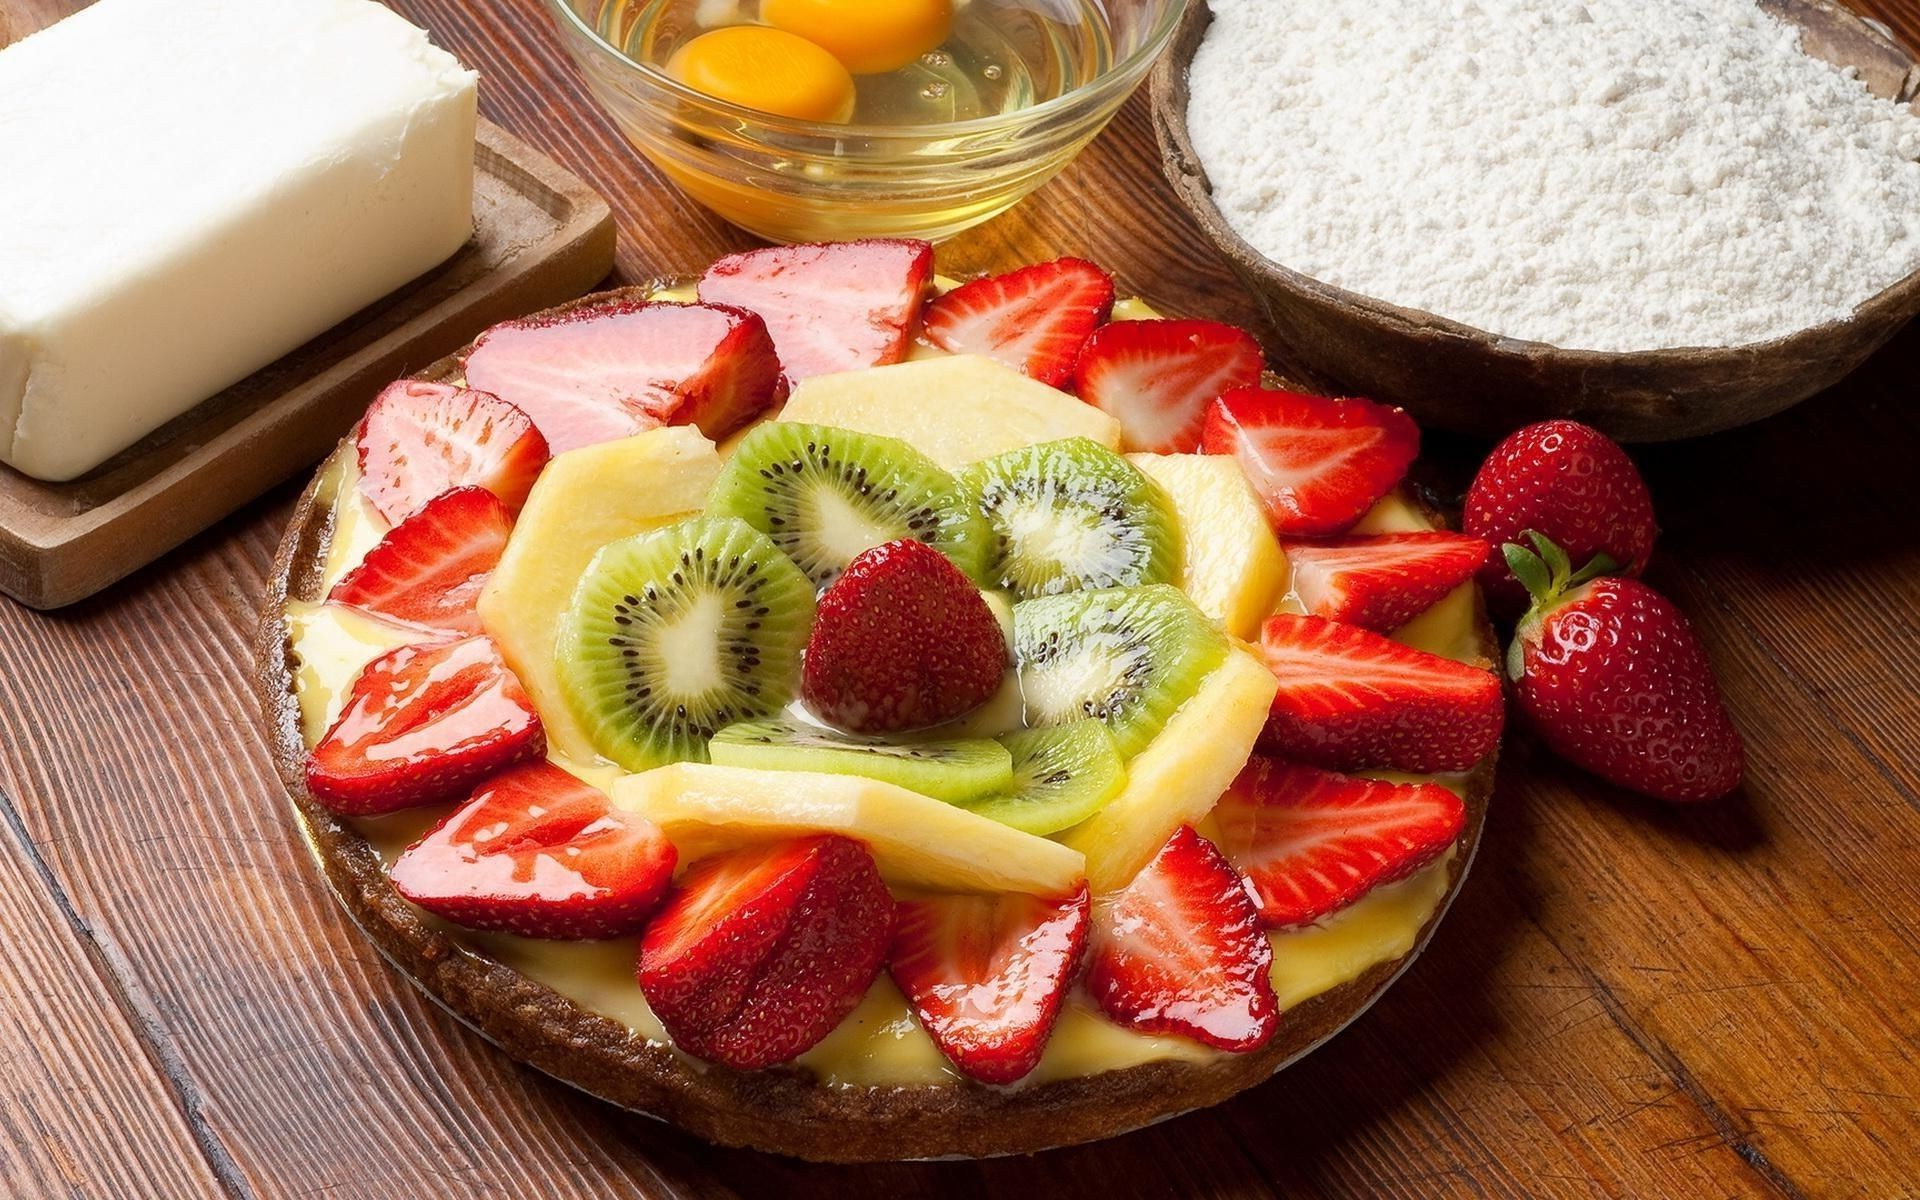 a Juicy pineapple dessert, eggs, strawberry slices kiwi